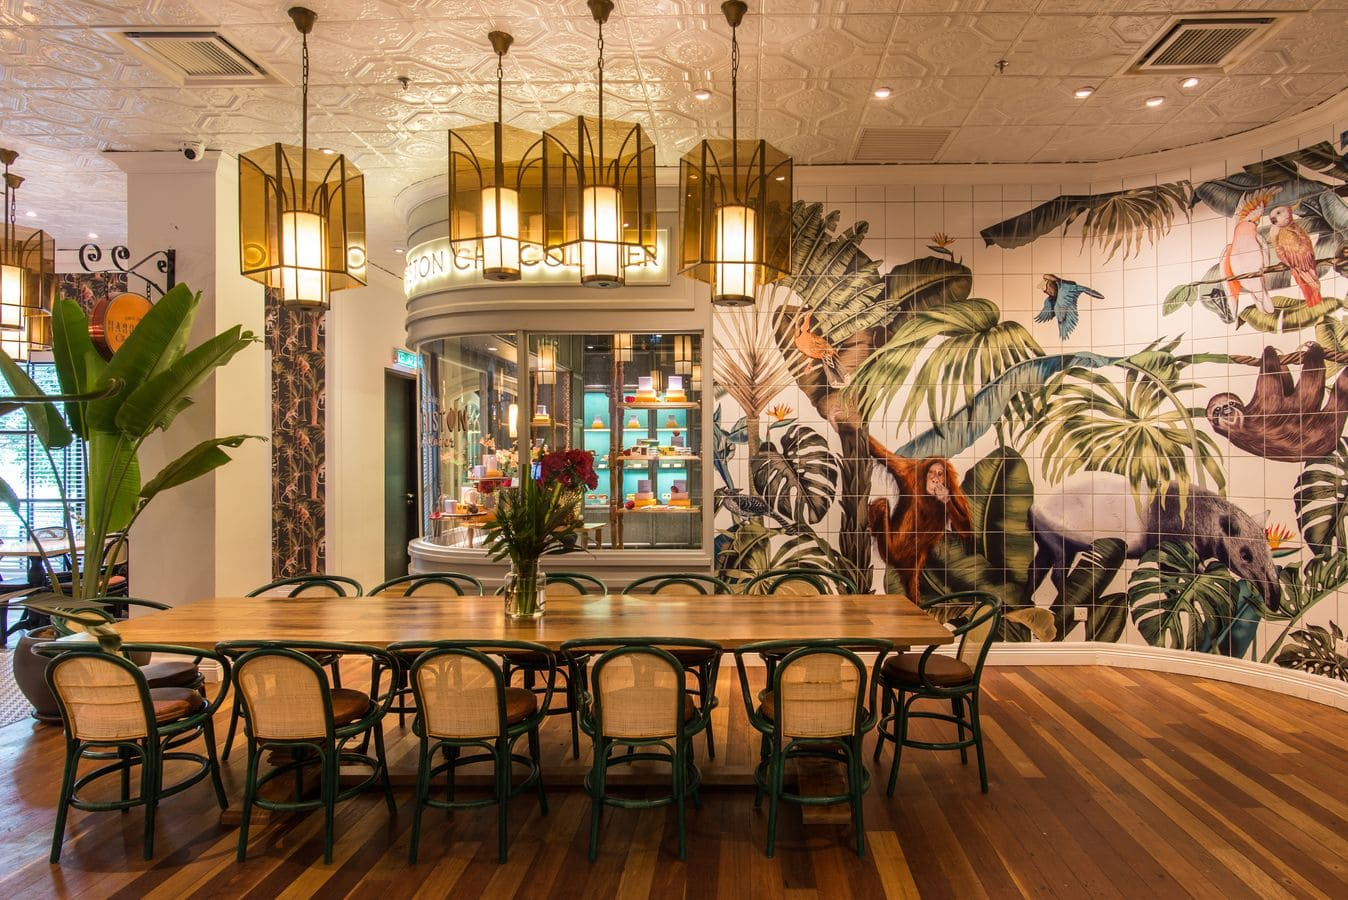 Feast on with Bo All Day Dining's Gastronomic Offerings